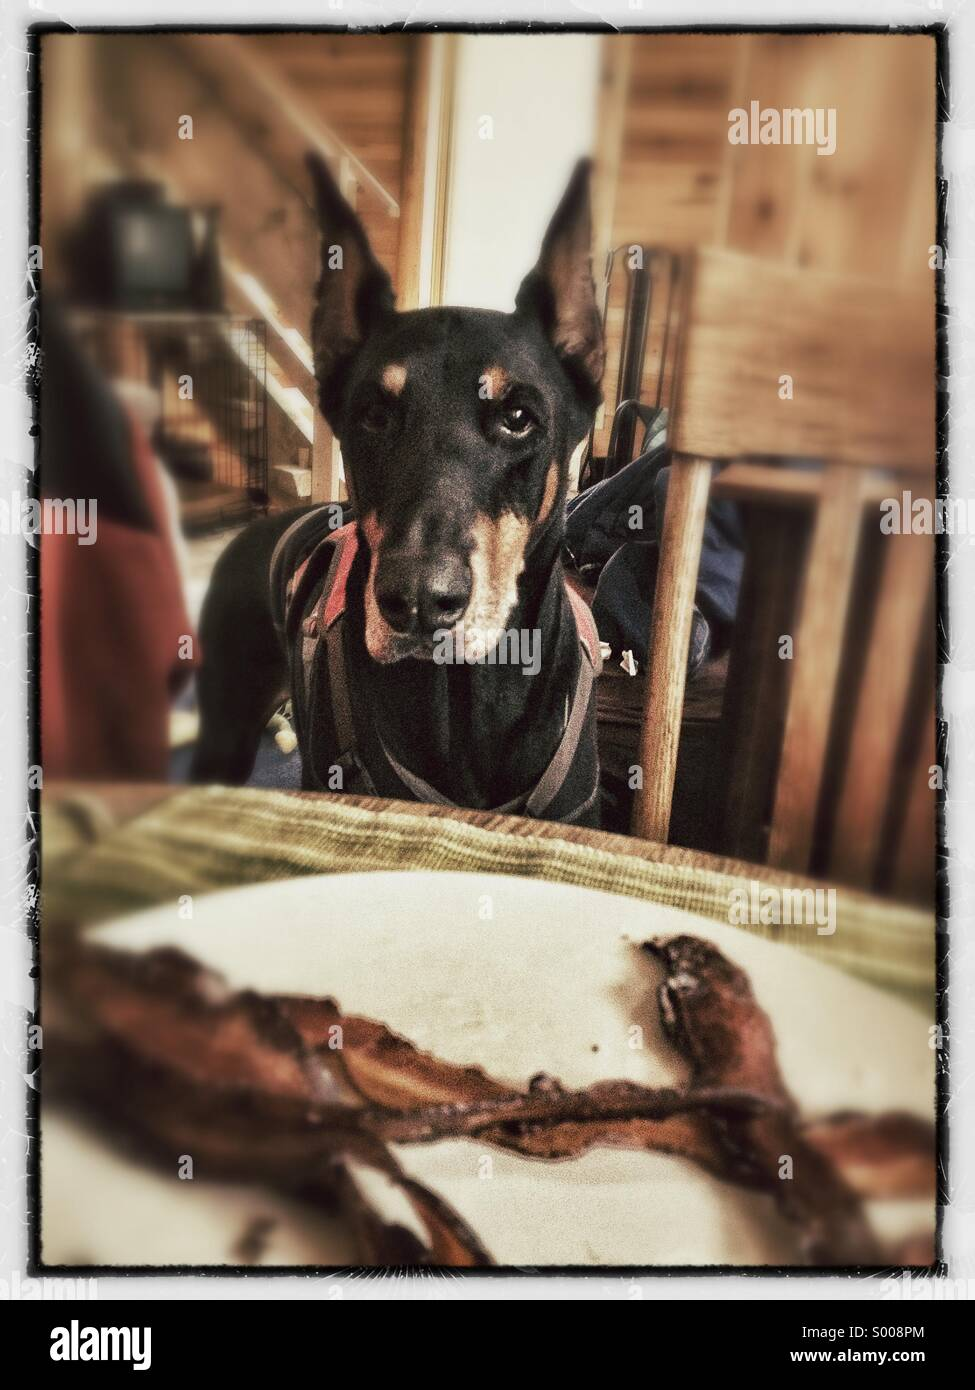 Doberman wants bacon - Stock Image